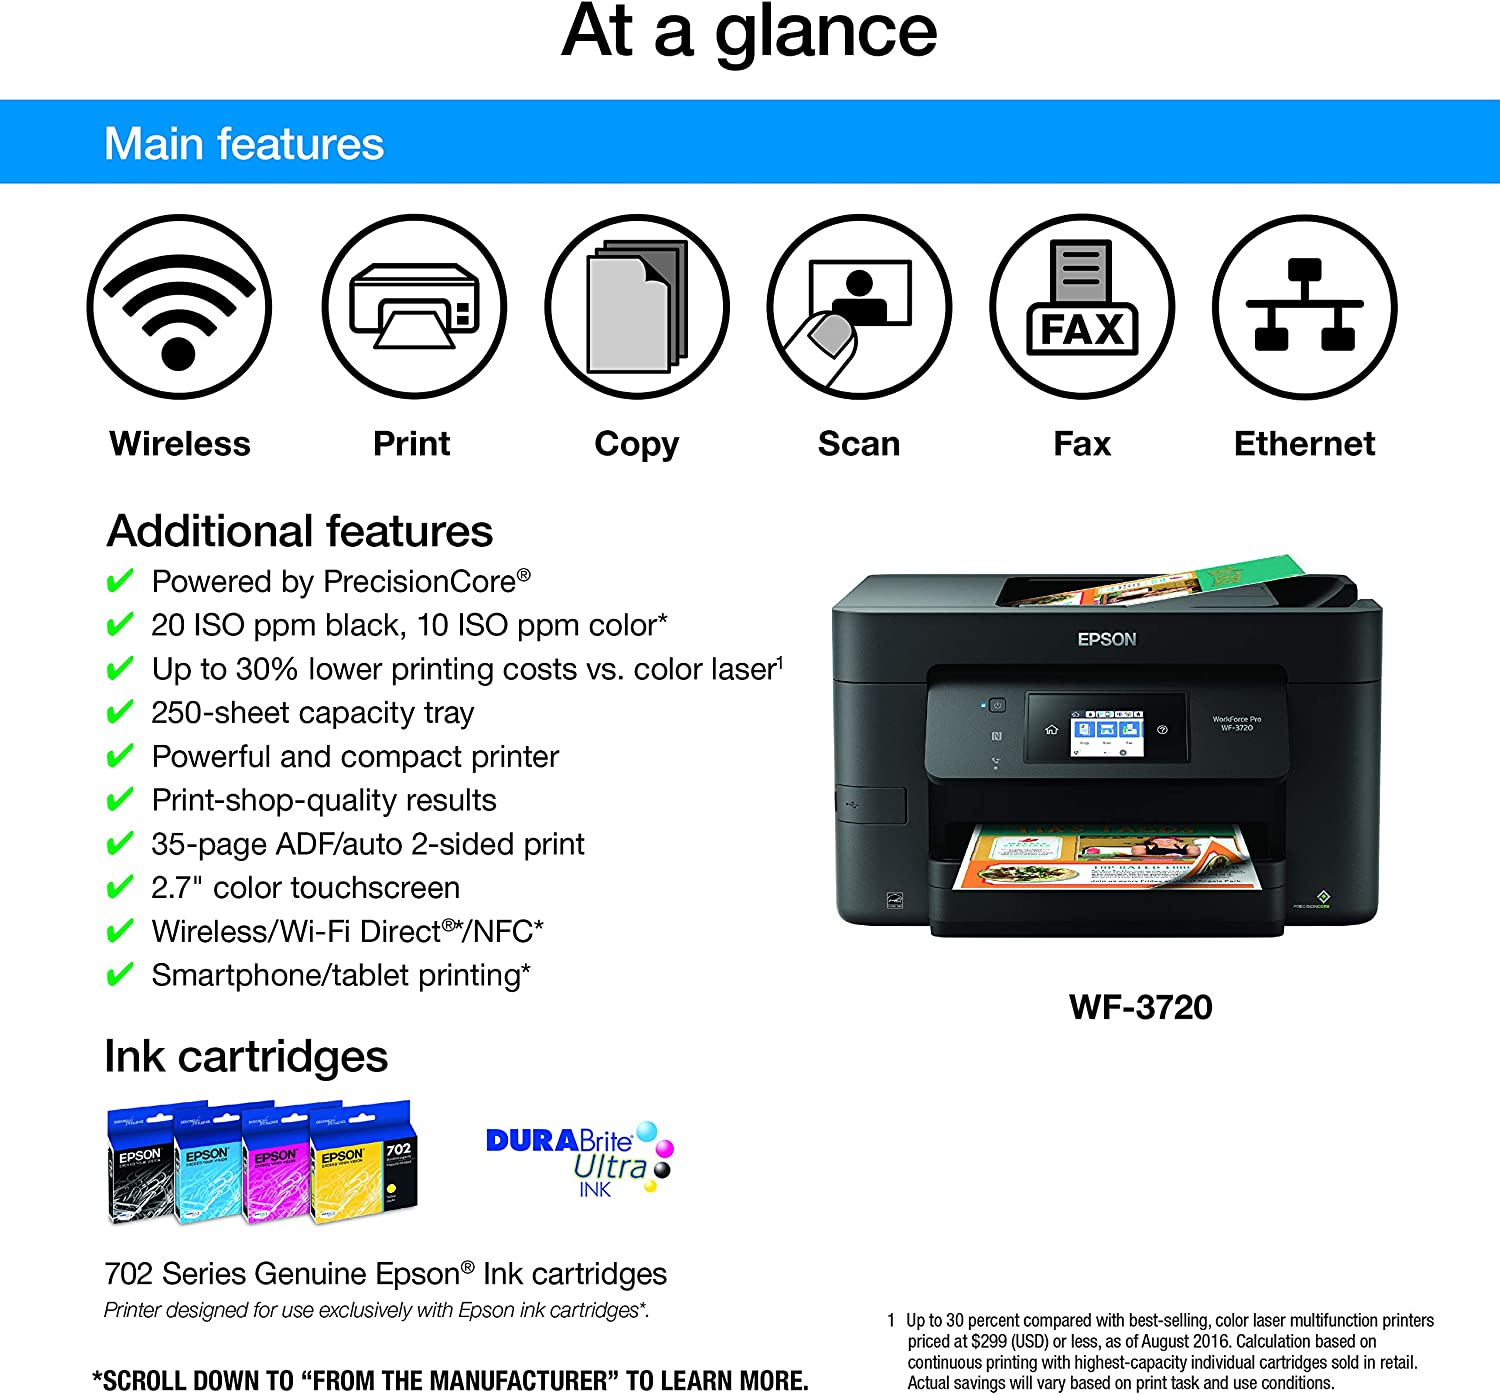 Amazon.com: Epson WorkForce Pro WF-3720 Impresora todo ...